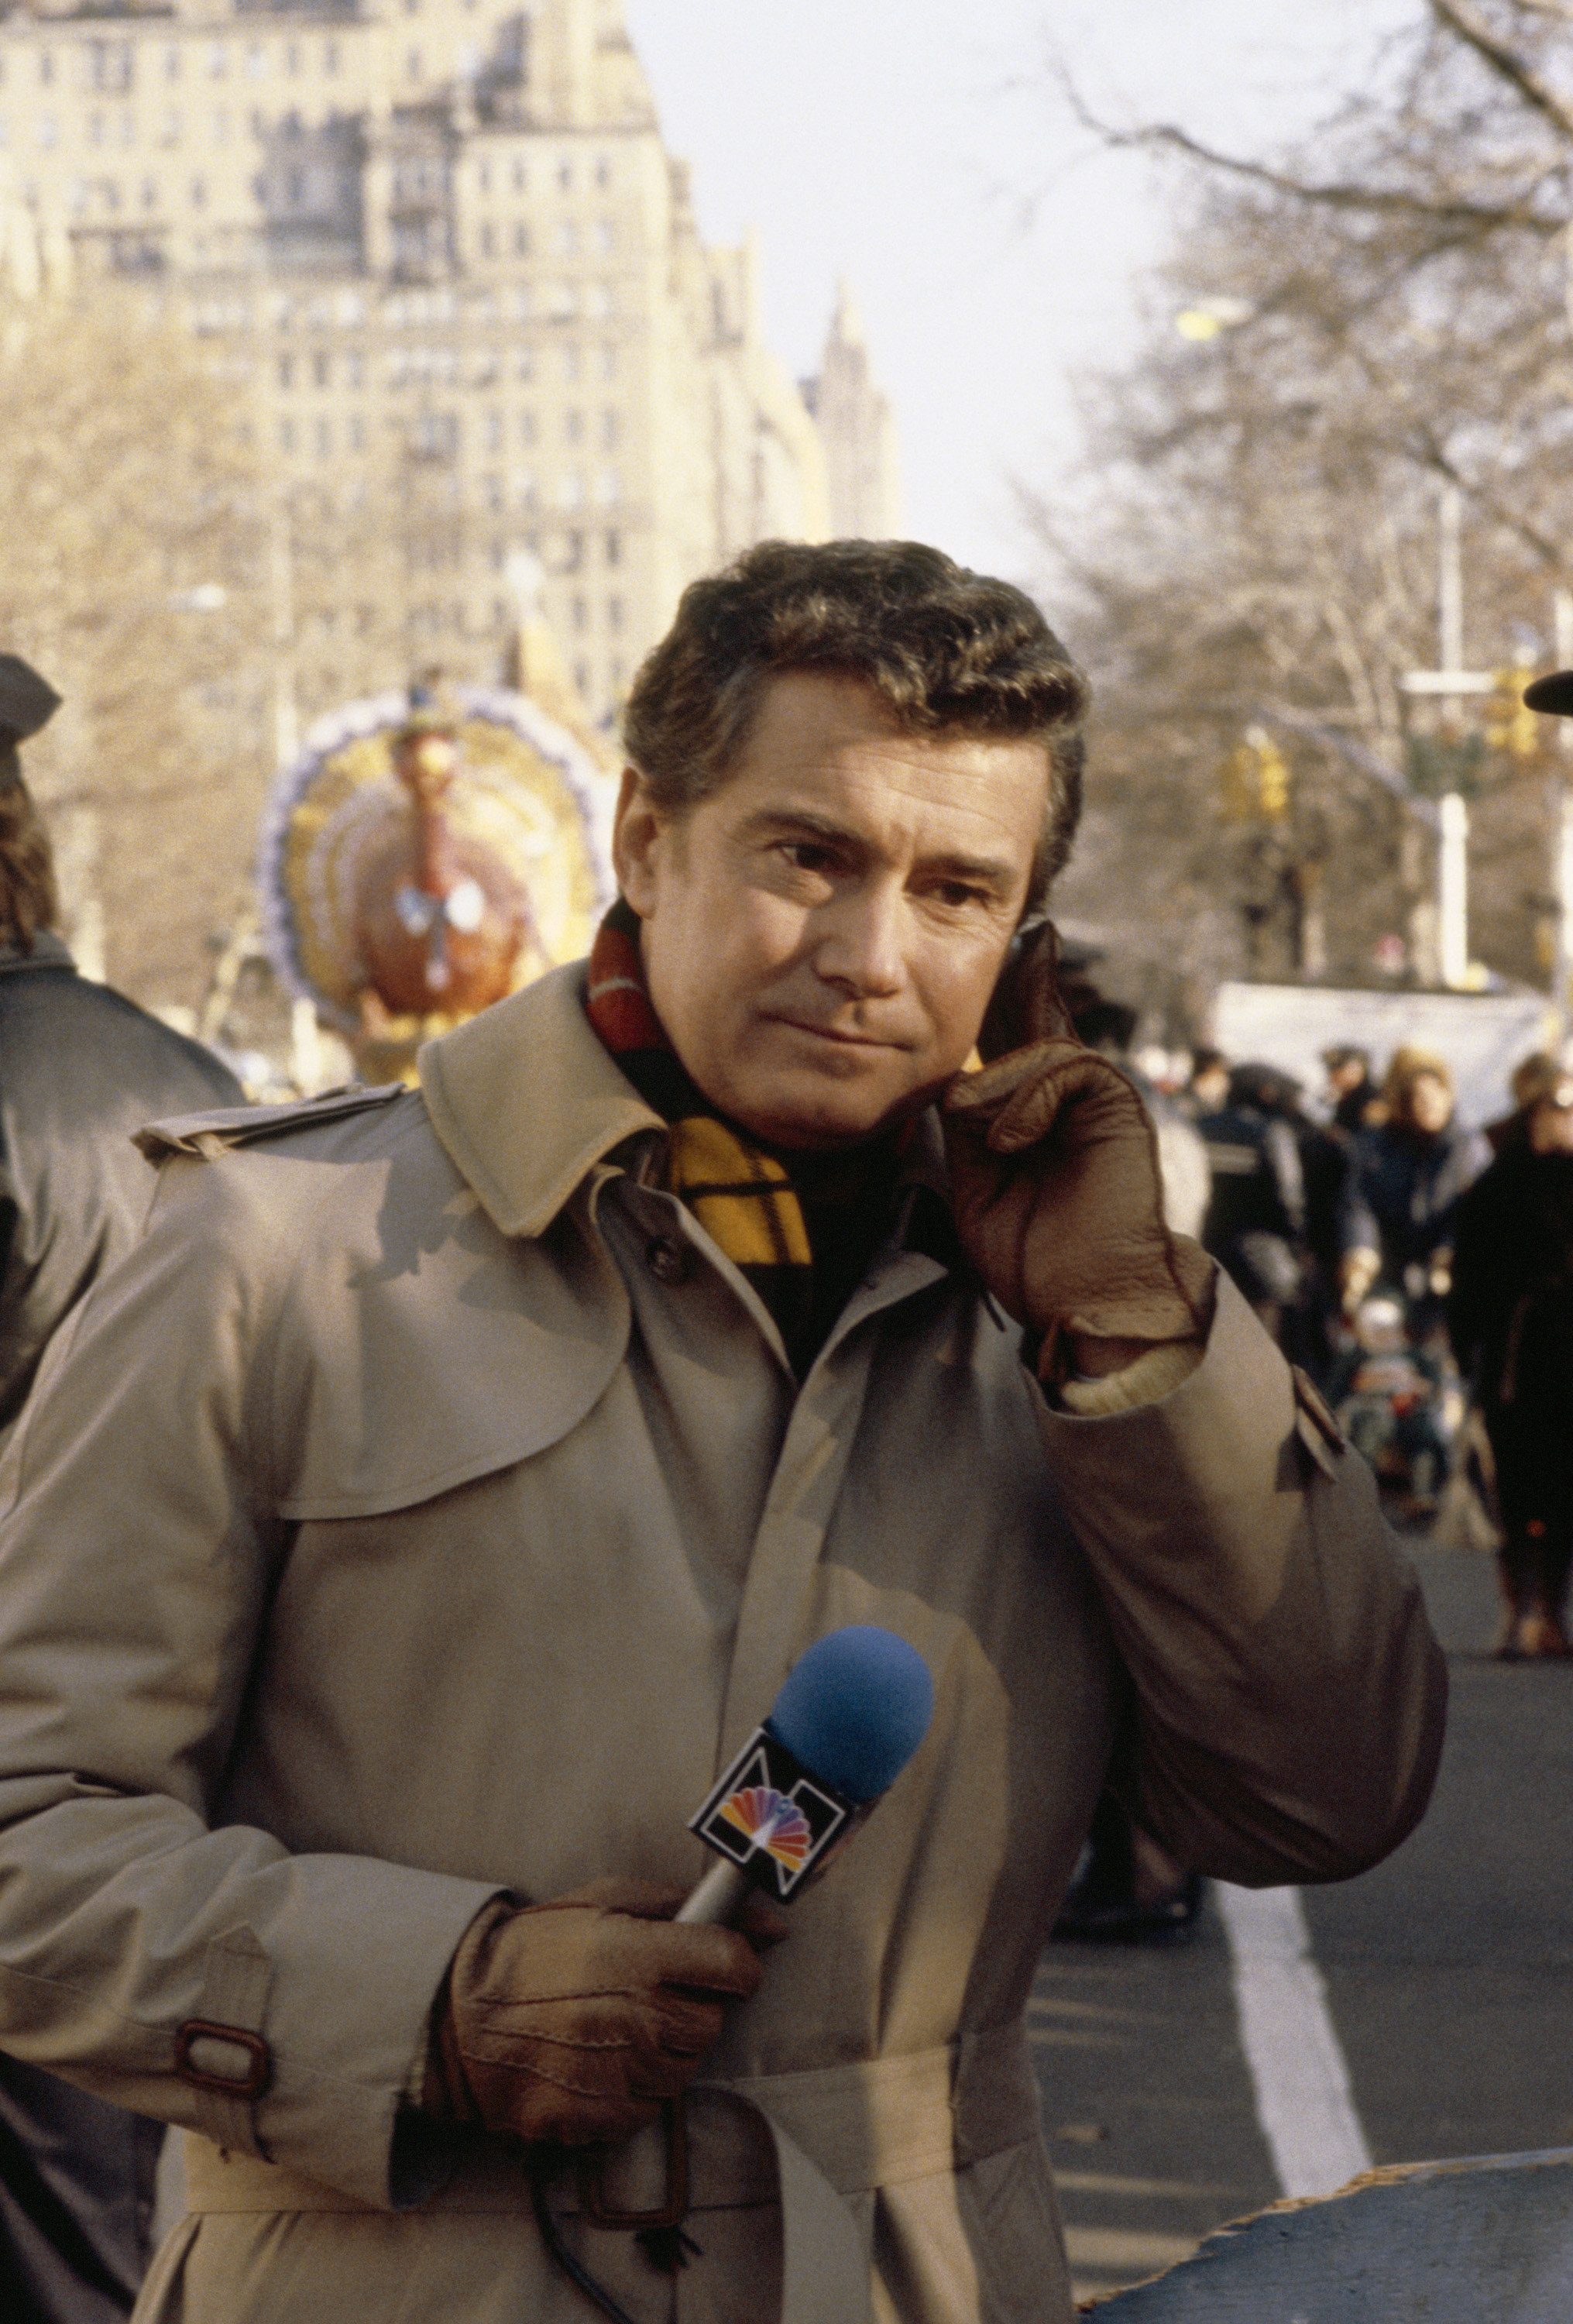 Philbin in a trench coat with a microphone during a parade